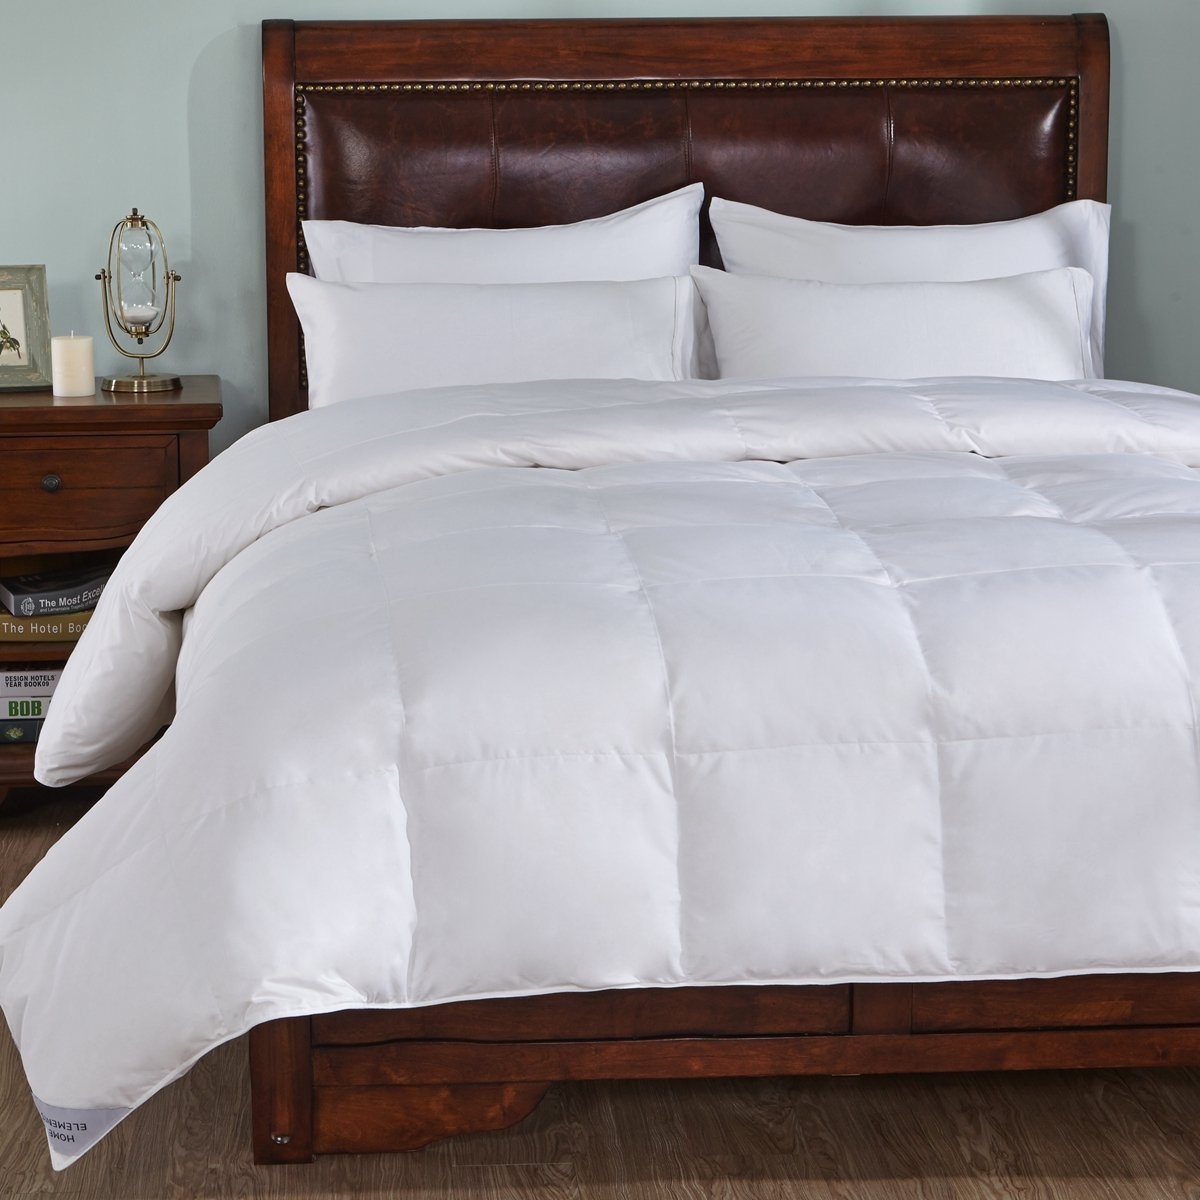 Home Element 800 Thread Count Medium Warmth White Goose Down Comforter 600 Fill Power-Full/Queen Size, Stripe White